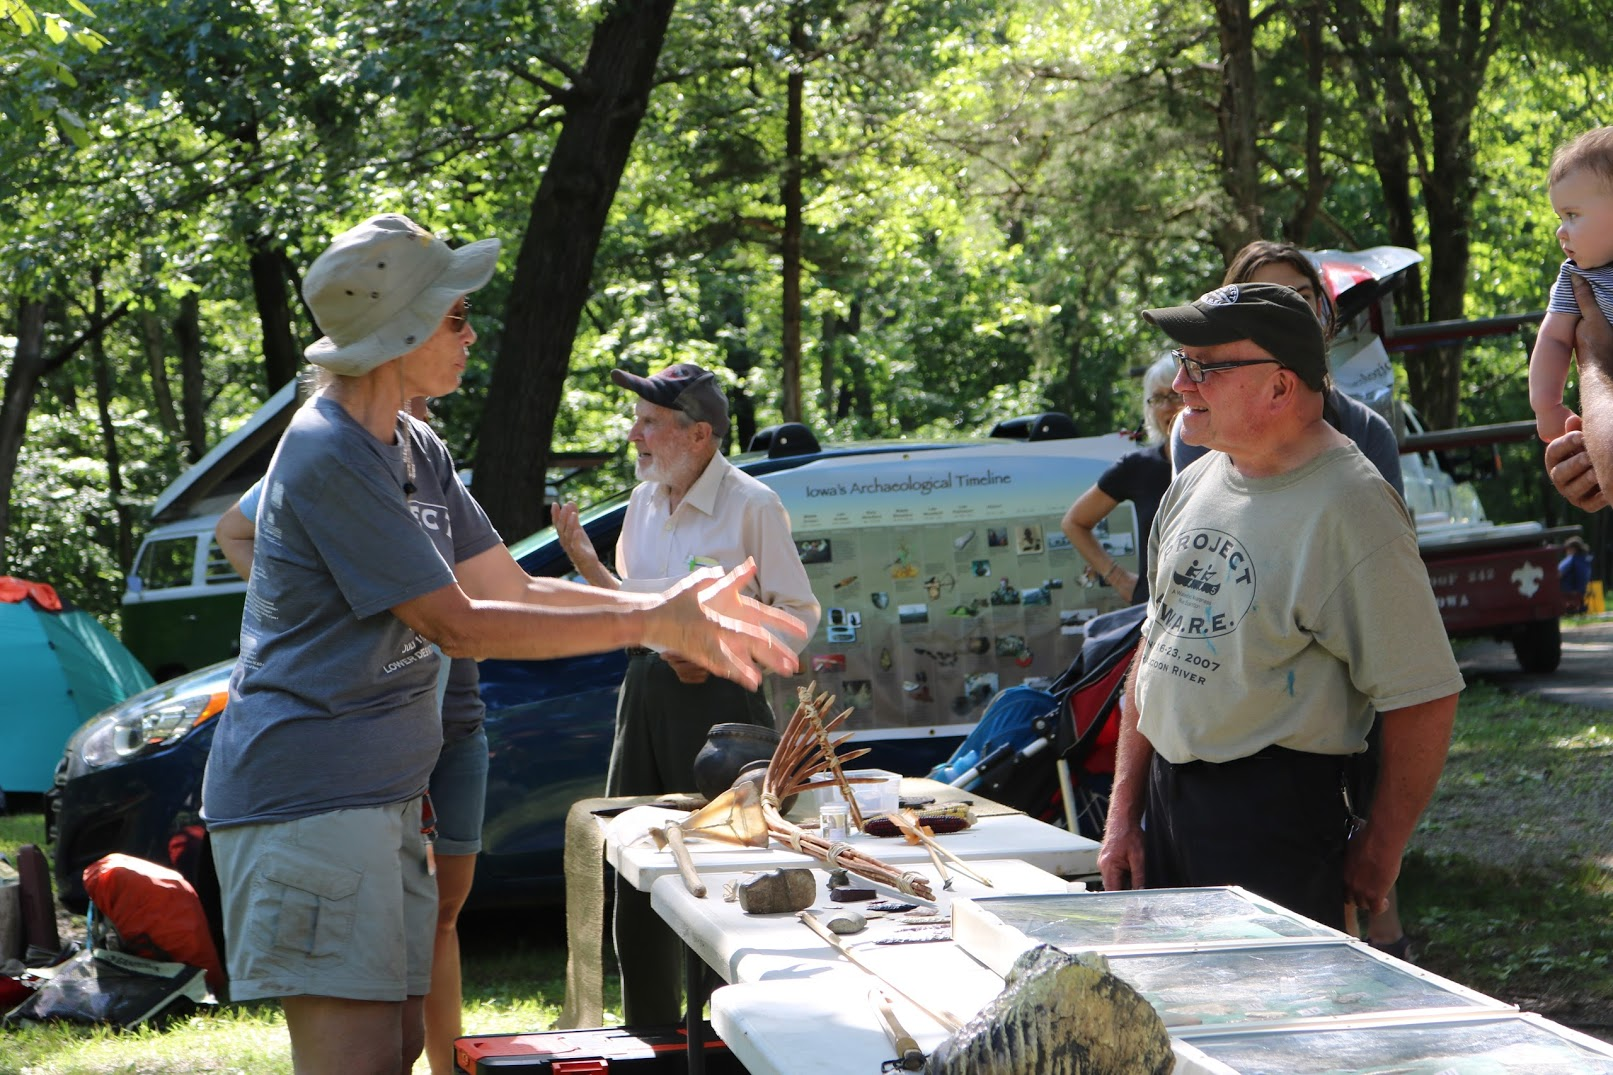 An outdoor outreach event, photo by the Iowa DNR